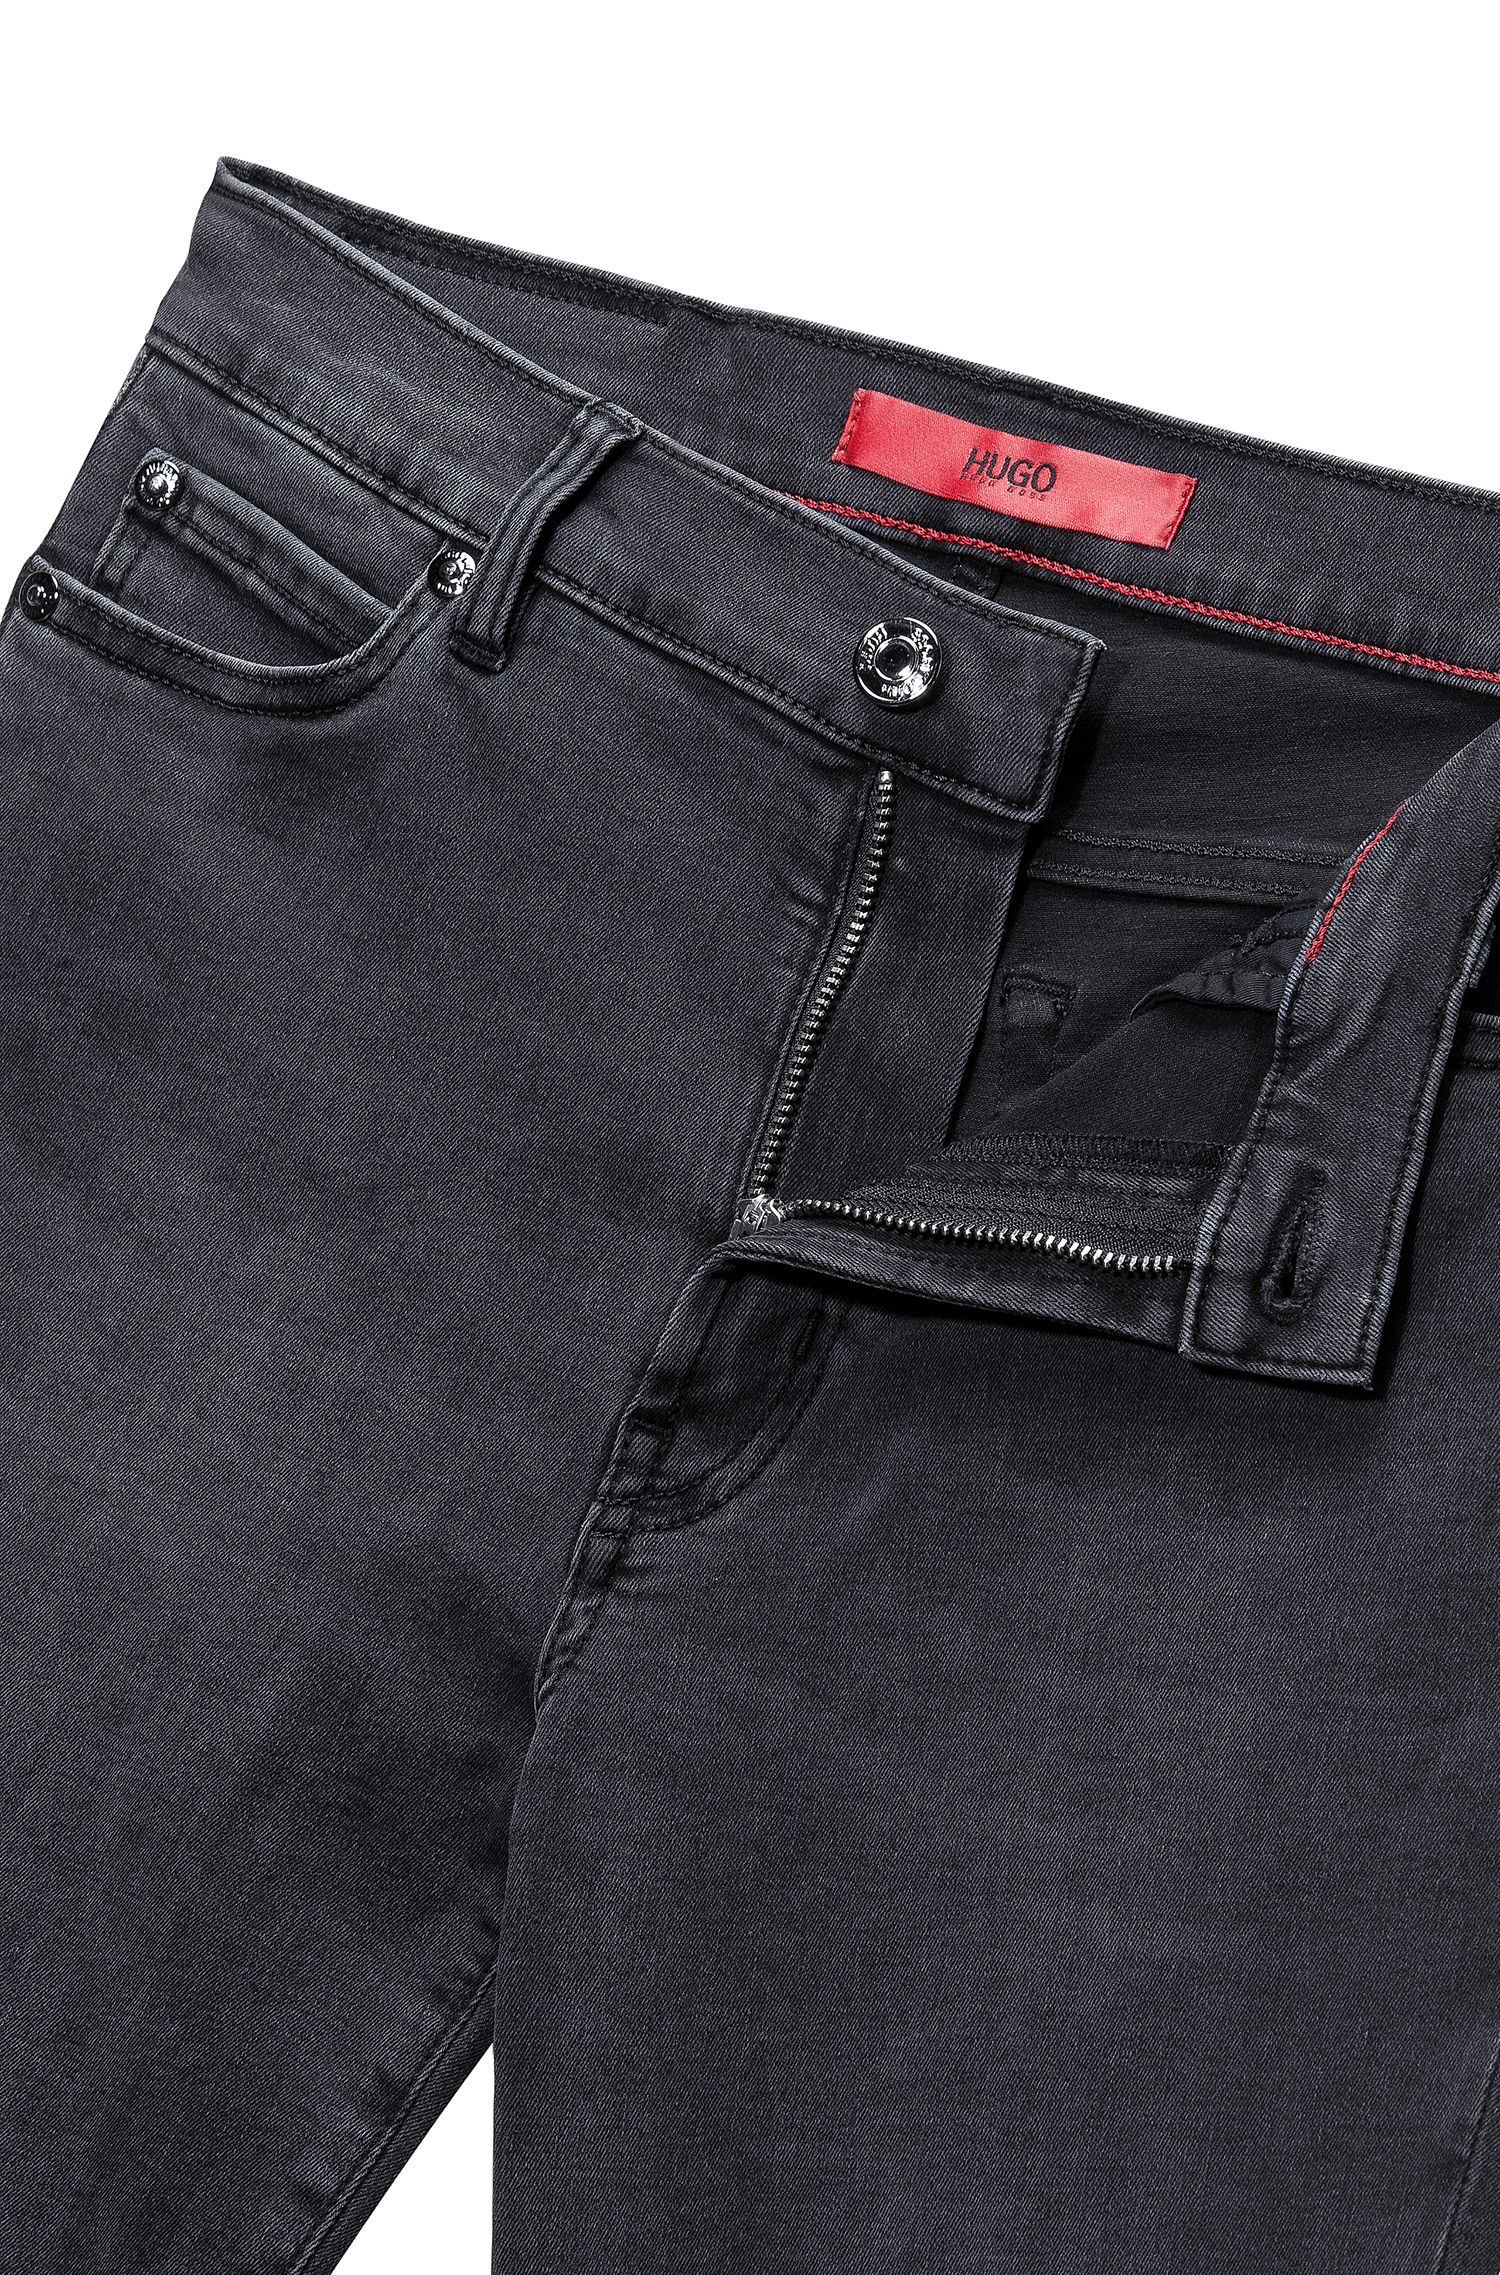 Super-stretch extra-slim-fit jeans with biker details